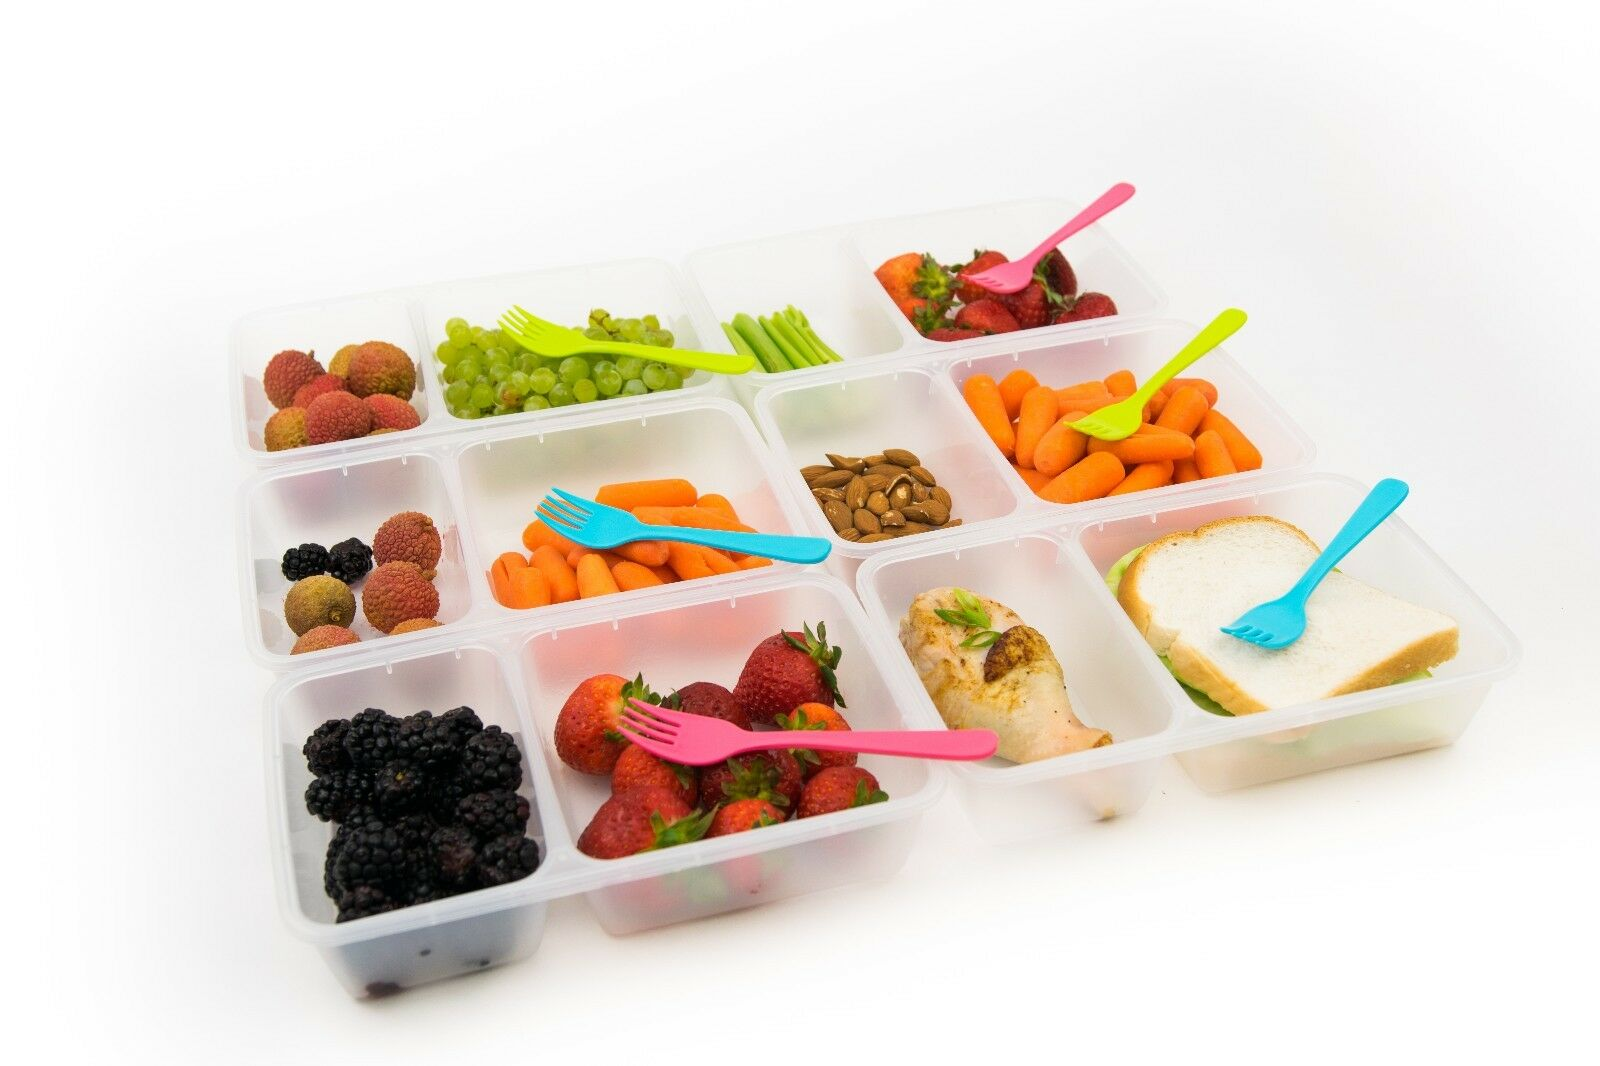 6-Pack Meal Prep Lunch Box Food Containers Set + Free Forks!!! 4